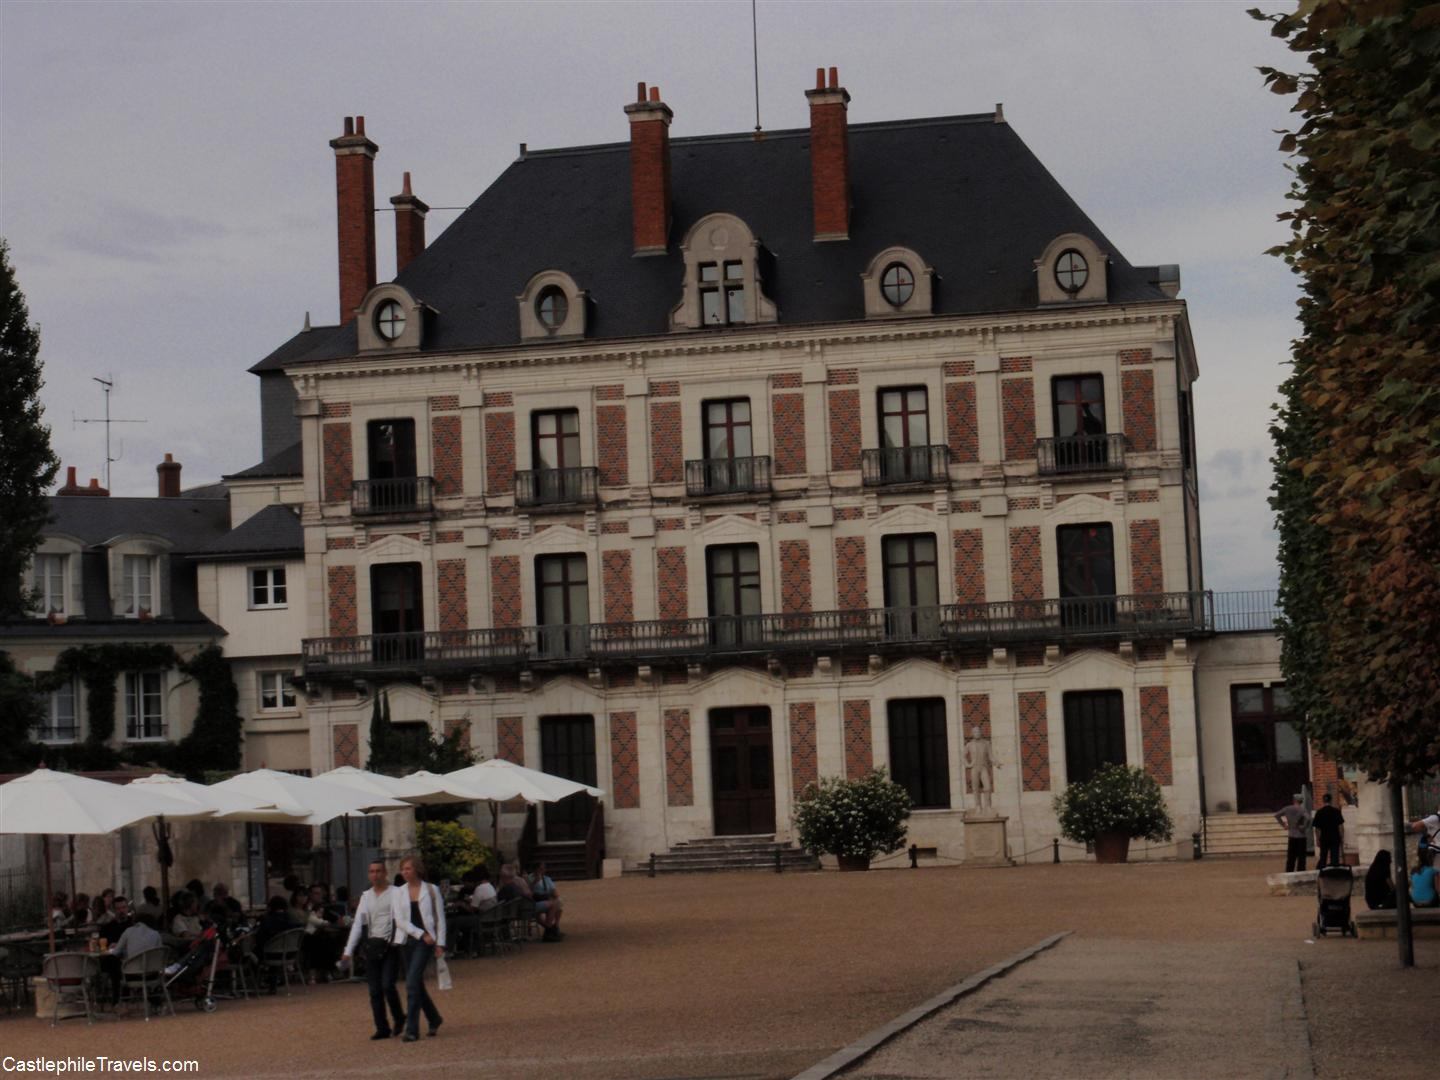 The Maison de la Magie